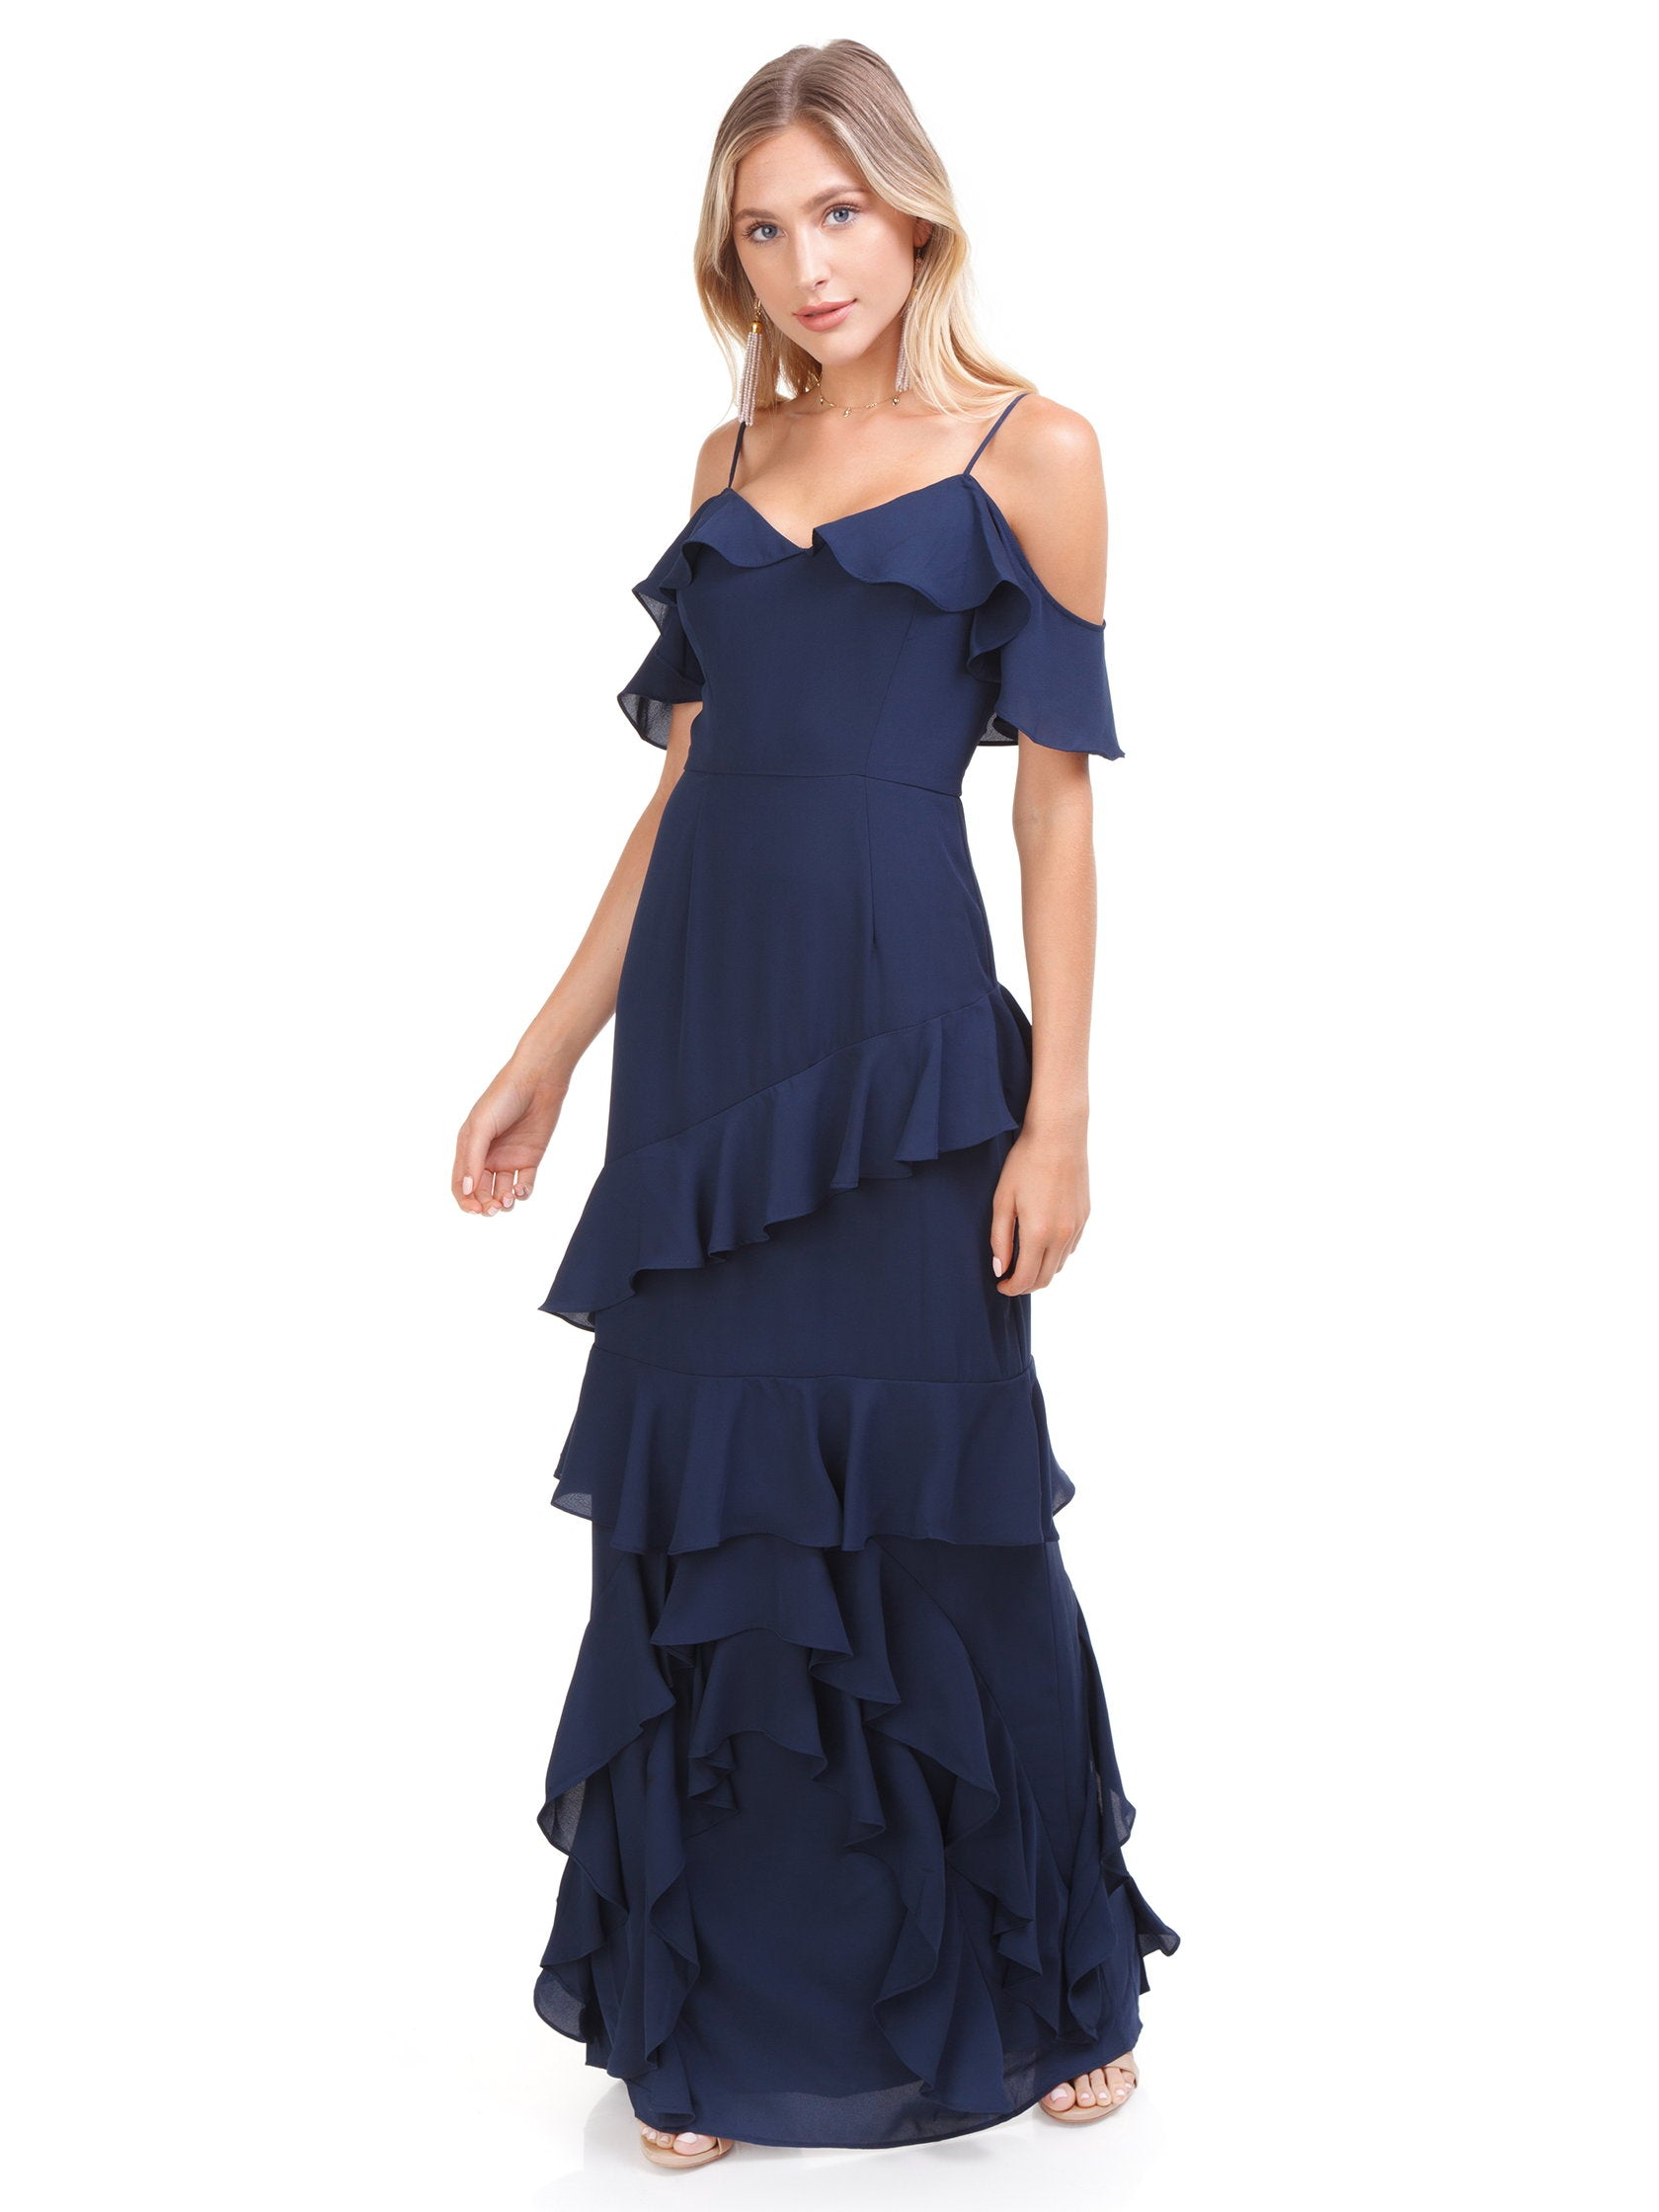 107c3d5ae53ca6 Women outfit in a dress rental from WAYF called Danielle Off Shoulder  Tiered Ruffle Maxi Dress